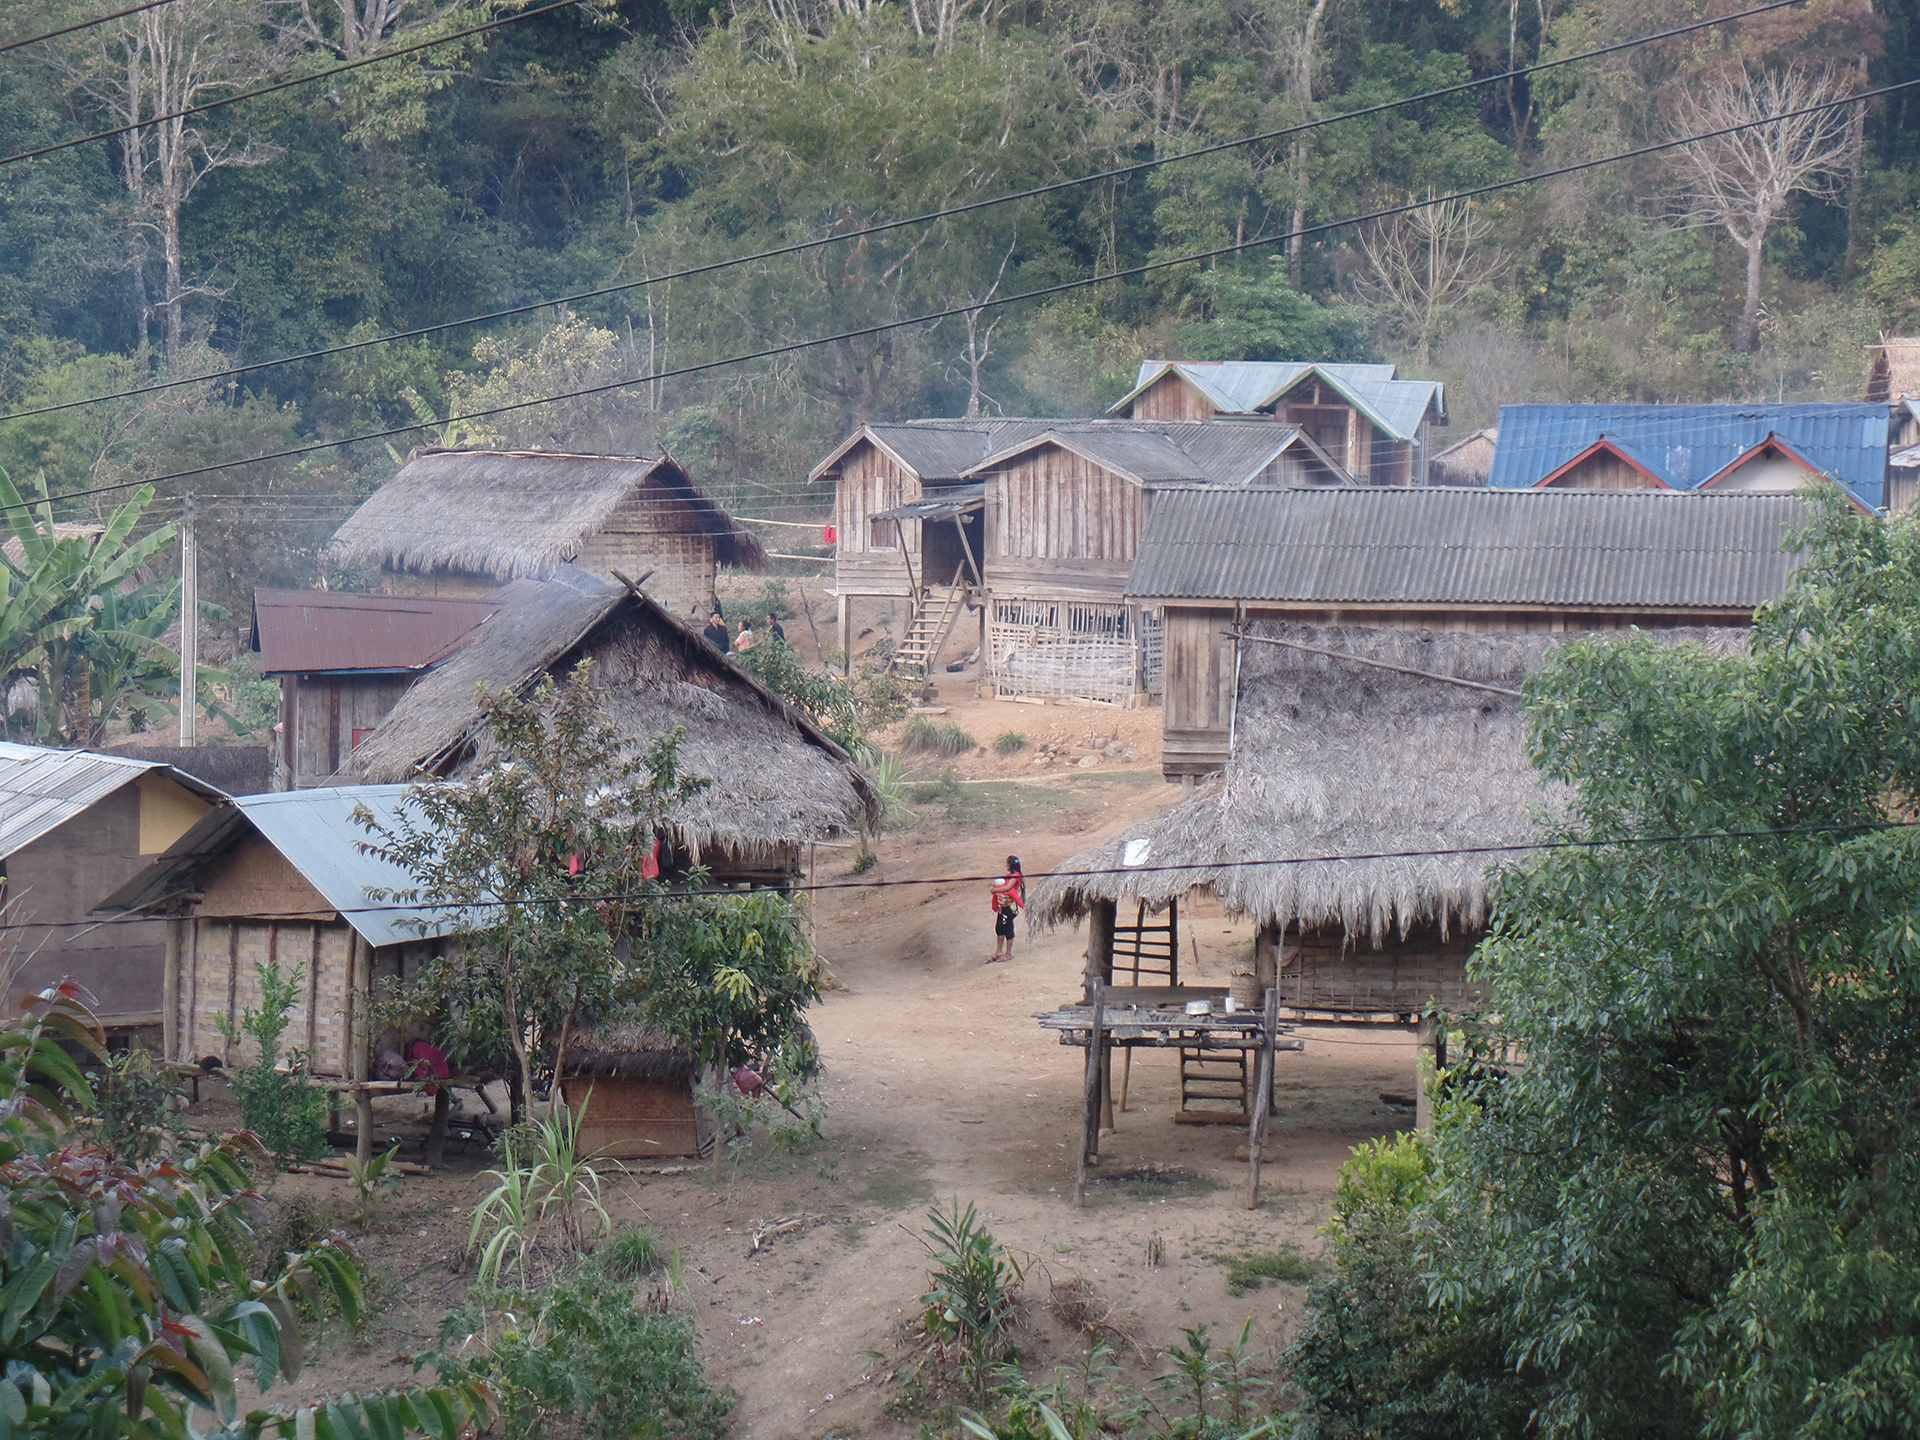 village in the south of Laos